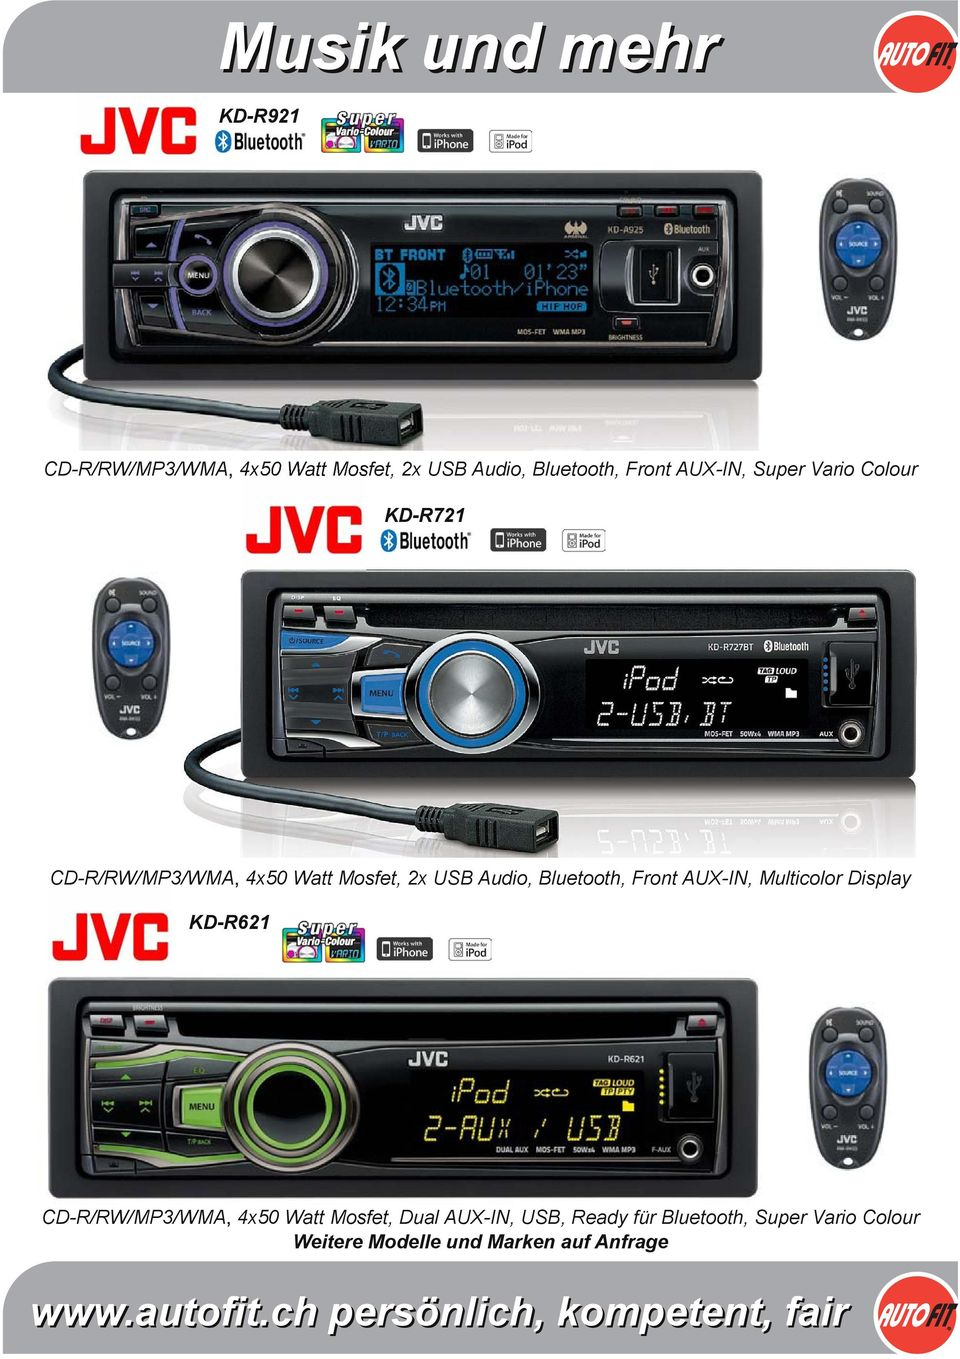 Bluetooth, Front AUX-IN, Multicolor Display KD-R621 CD-R/RW/MP3/WMA 4x50 Watt Mosfet,